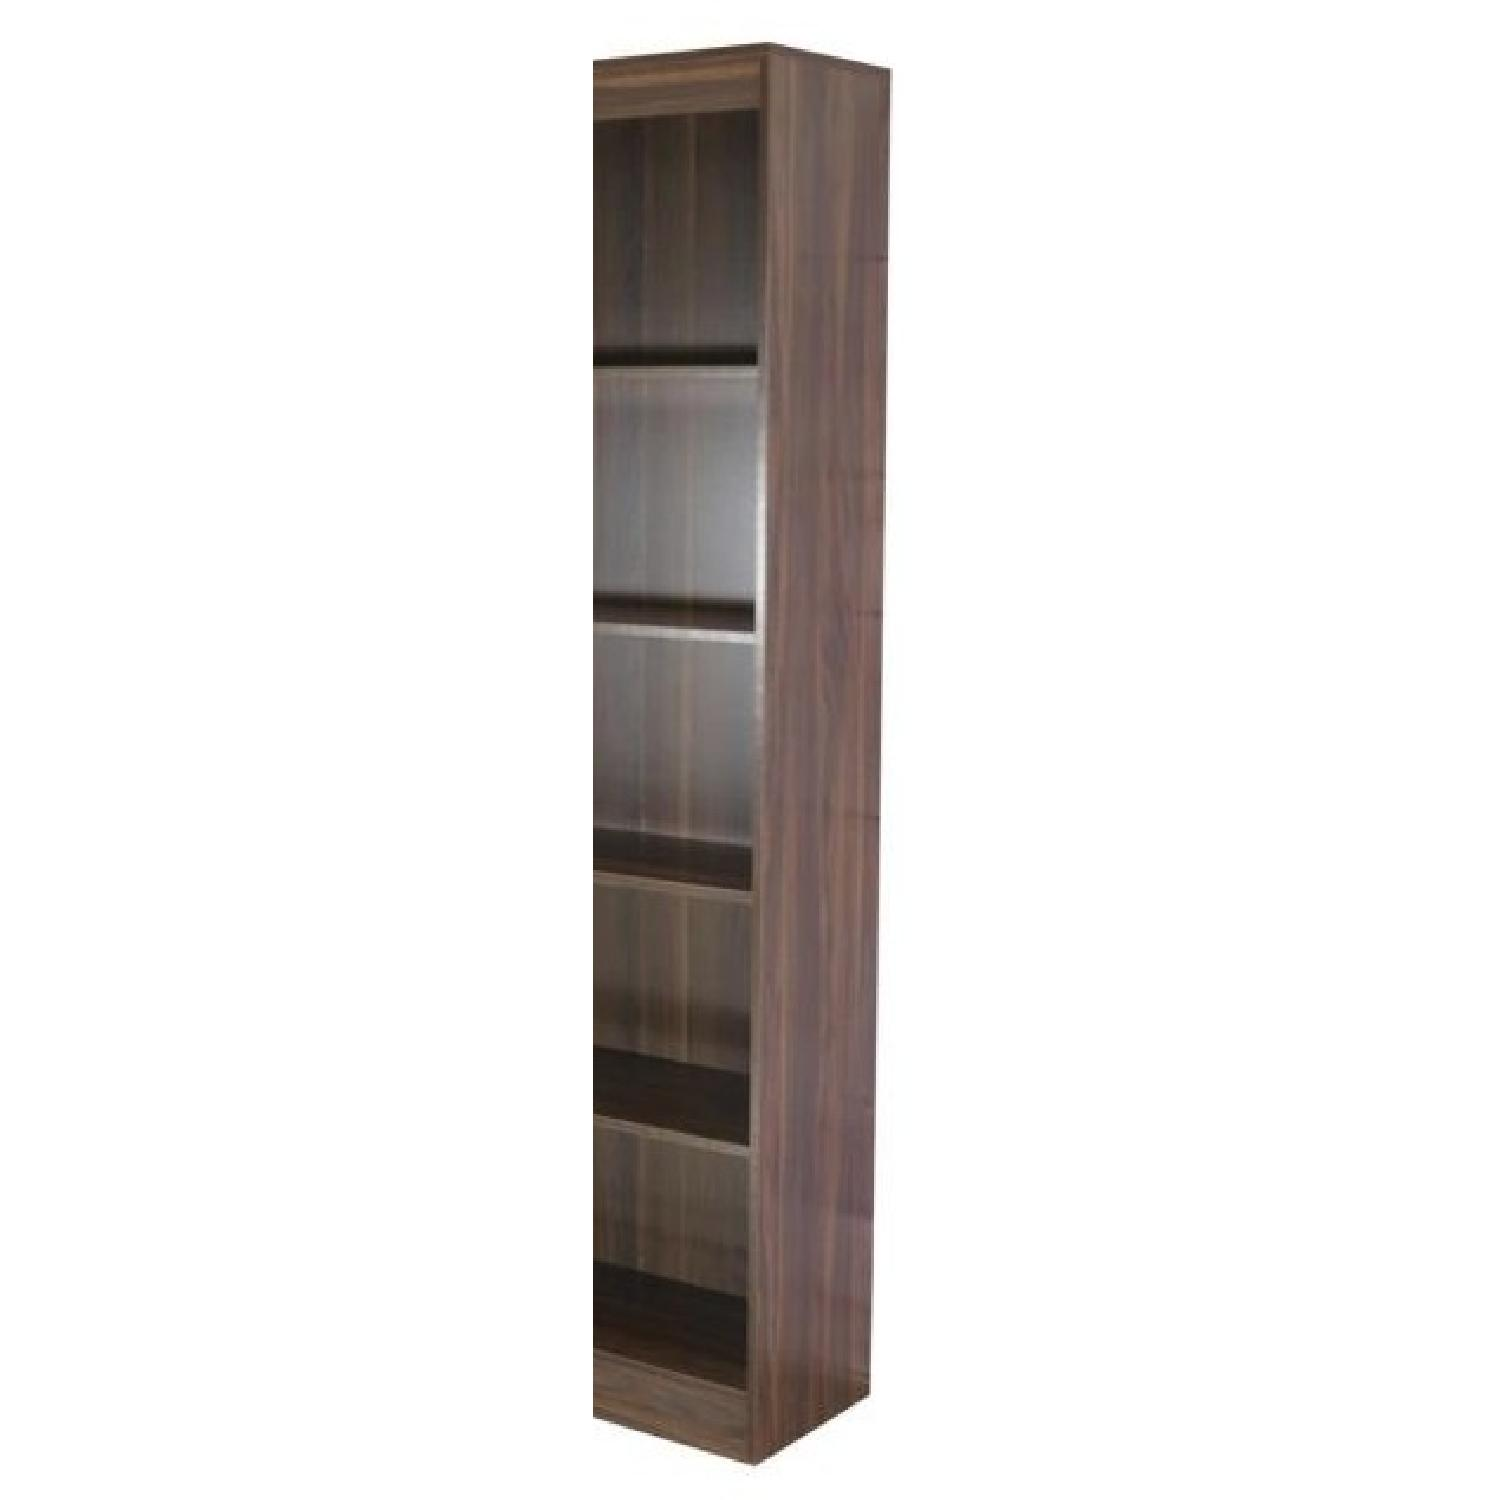 5-Tier Narrow Bookcase in Dark Walnut Finish